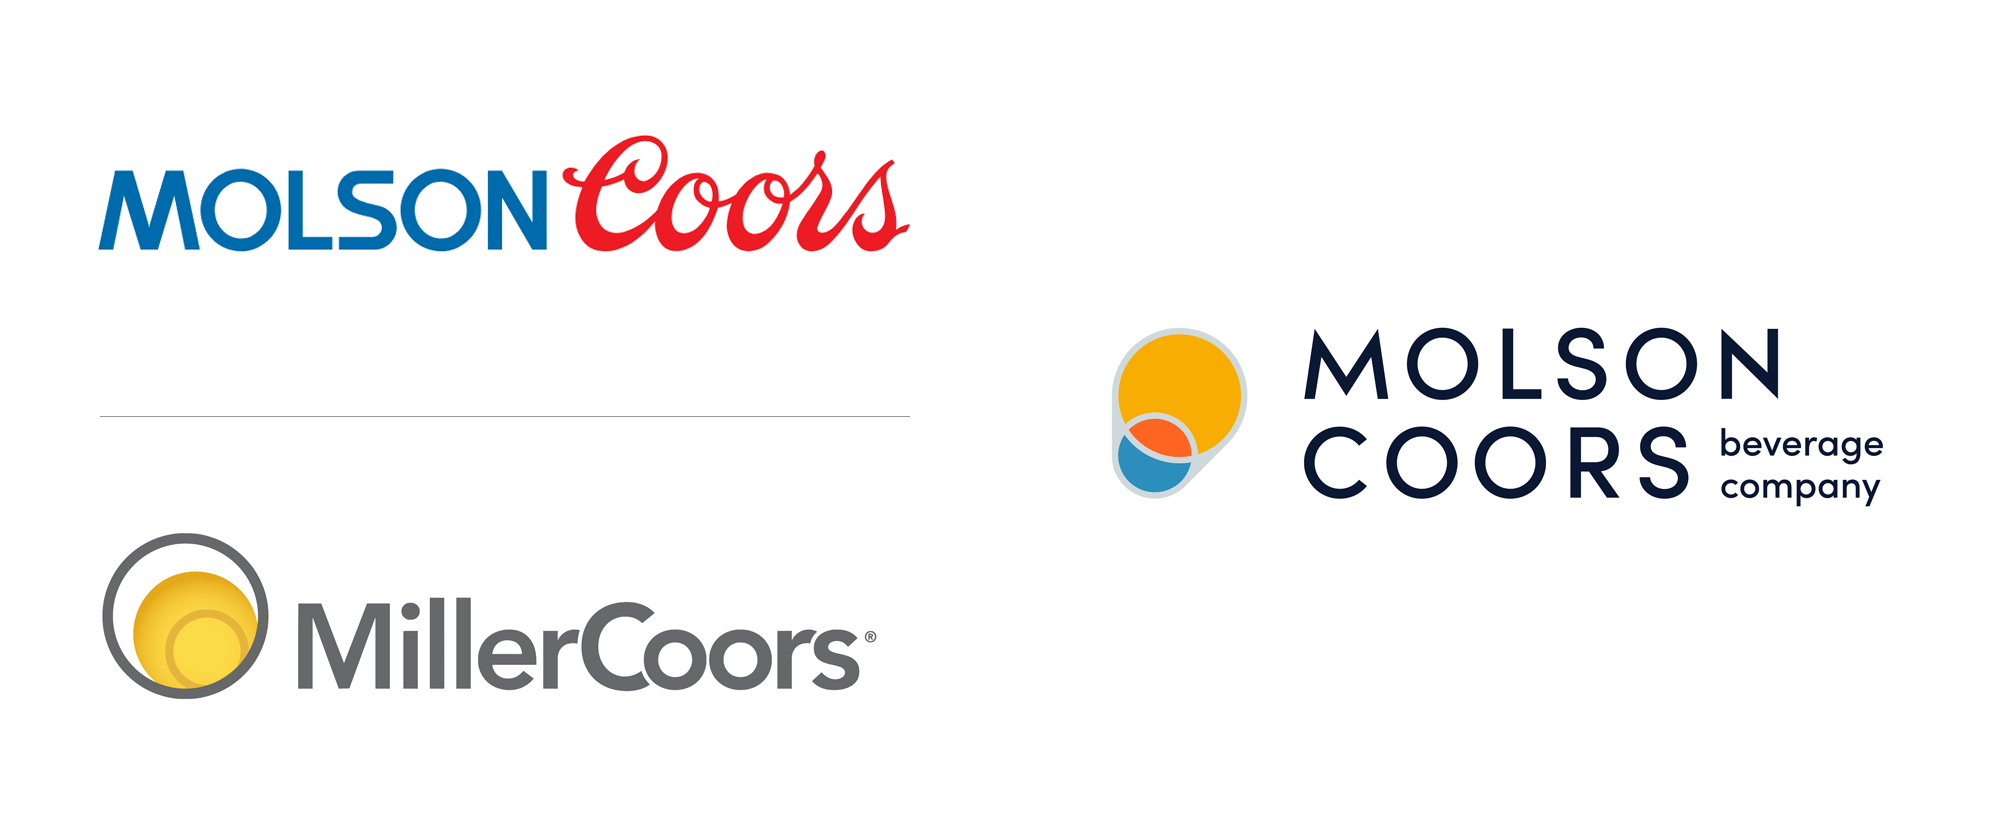 New Logo for Molson Coors by Soulsight